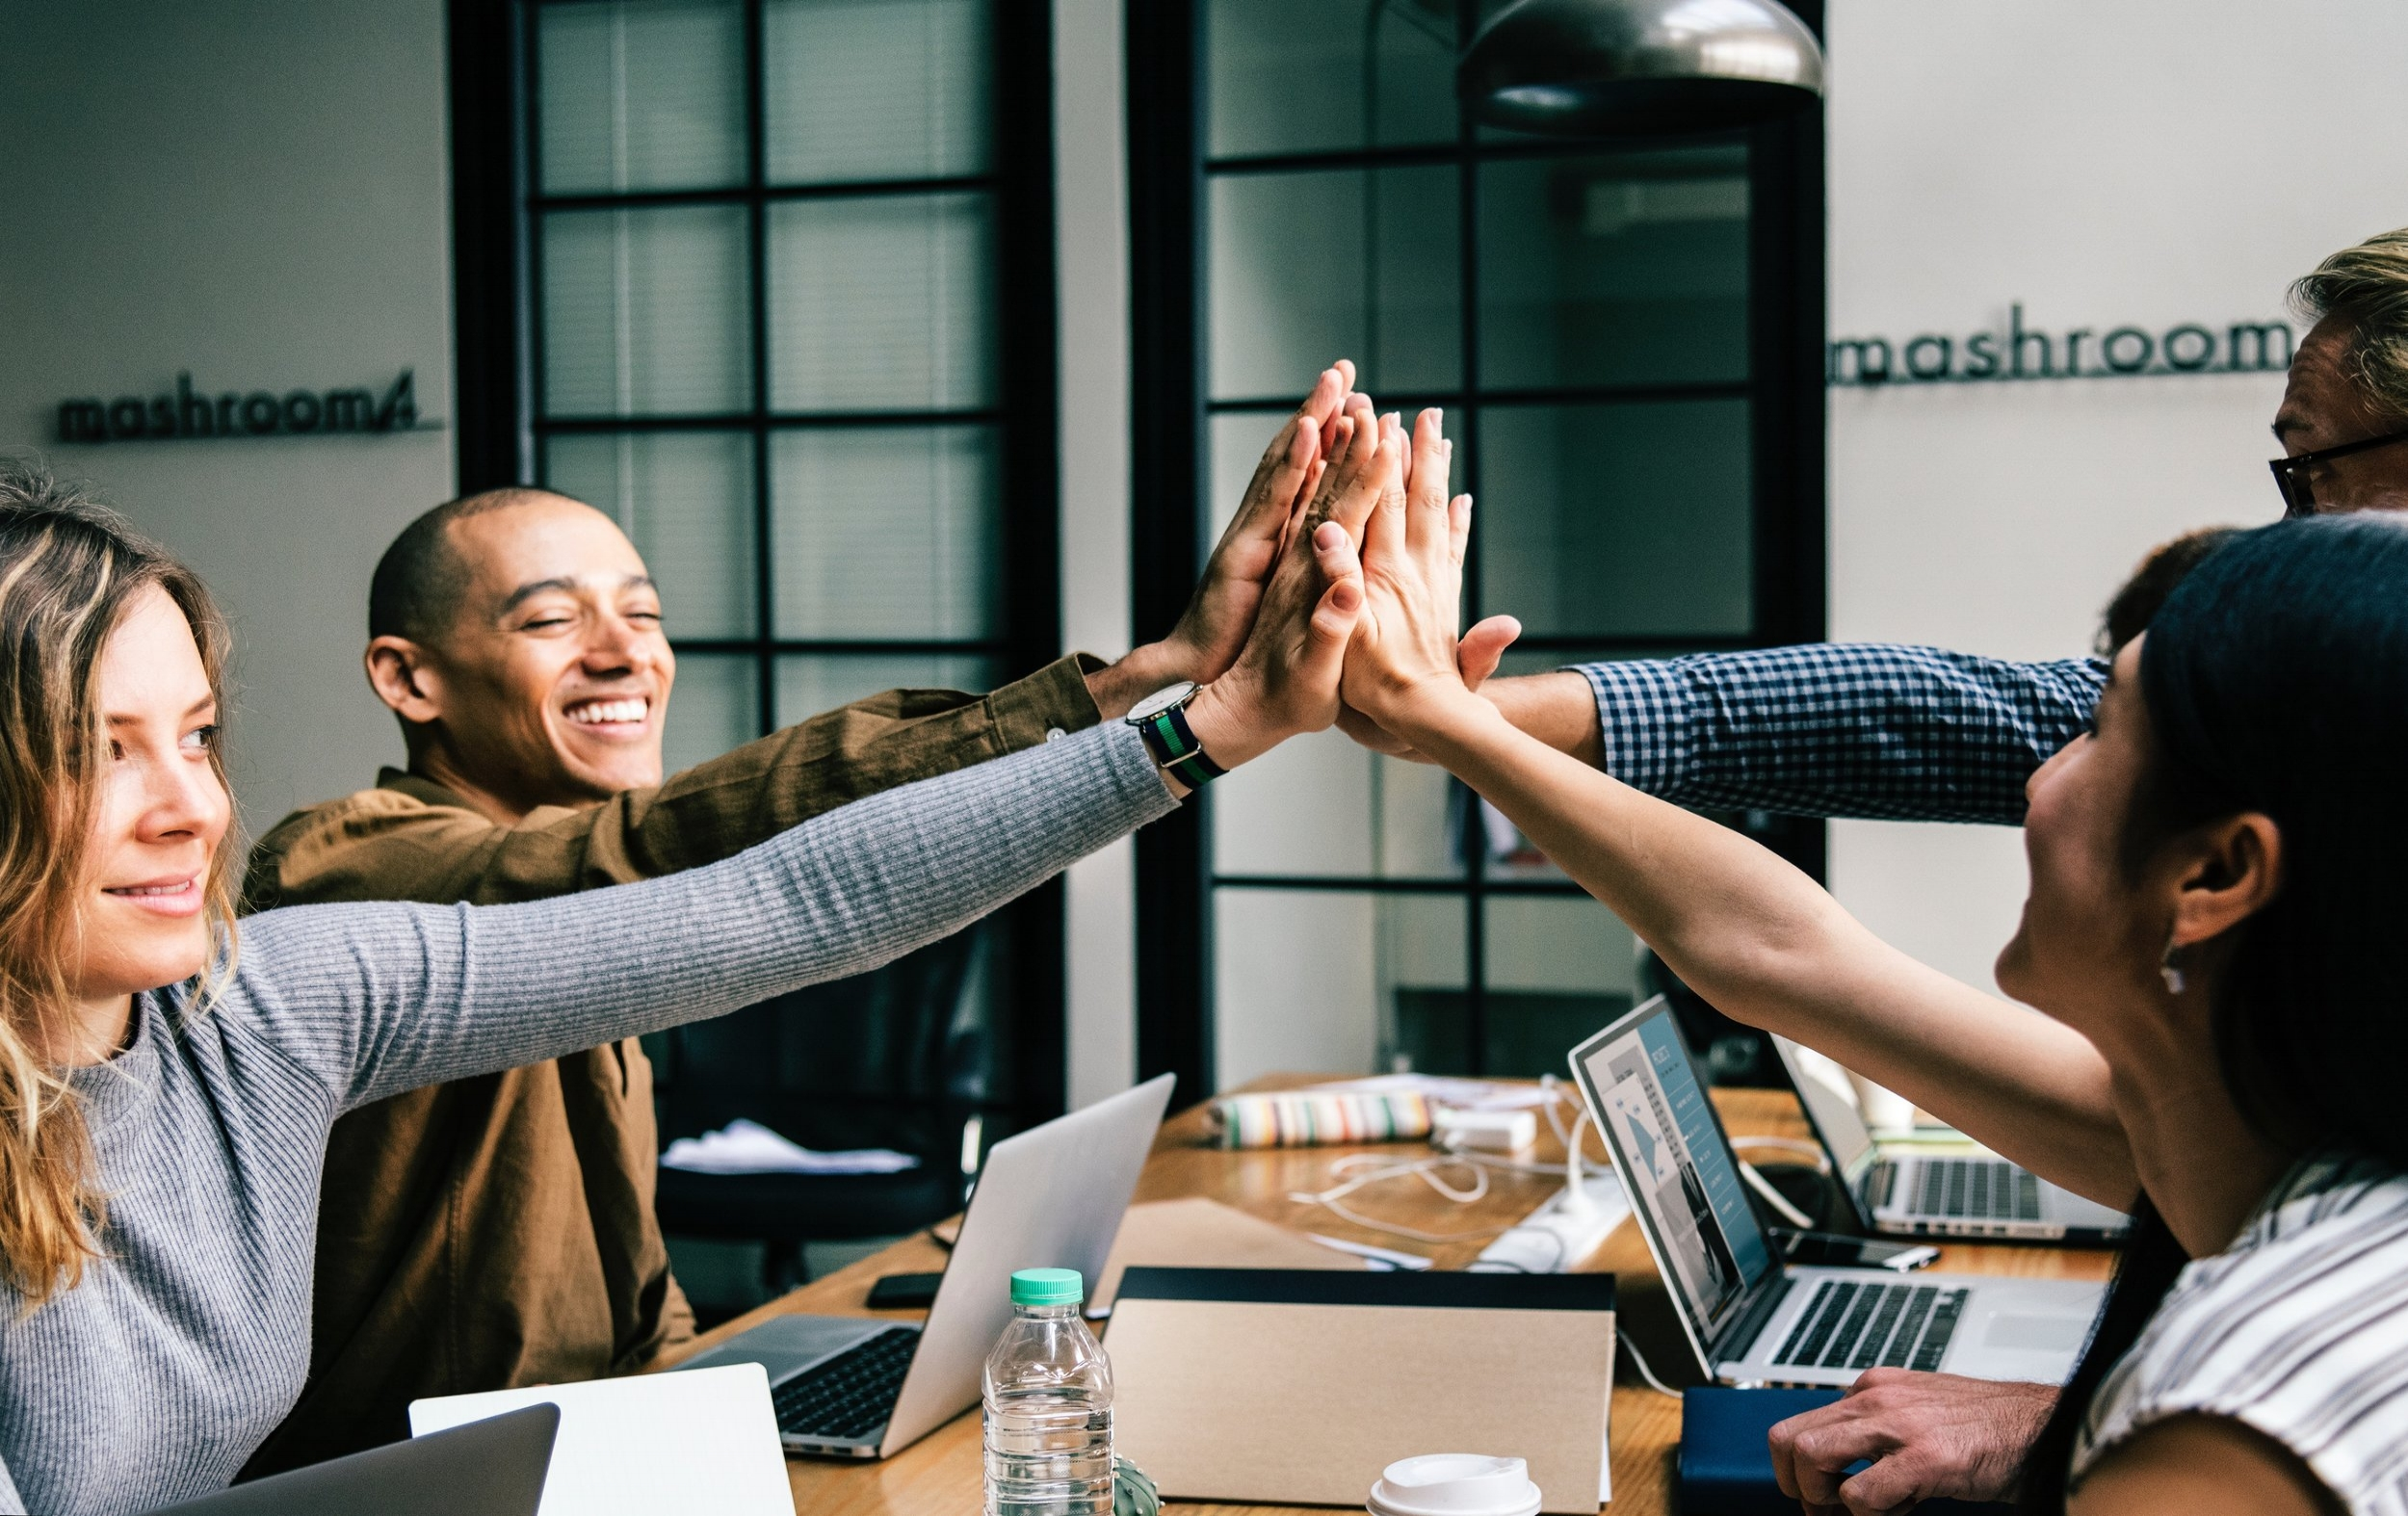 RELATIONAL MEETINGS: GENERATE INTERACTION AND RESULTS EVERY TIME - Learn how to lead and/or participate in productive, efficient meetings that yield contributions and results from and for all attendees.